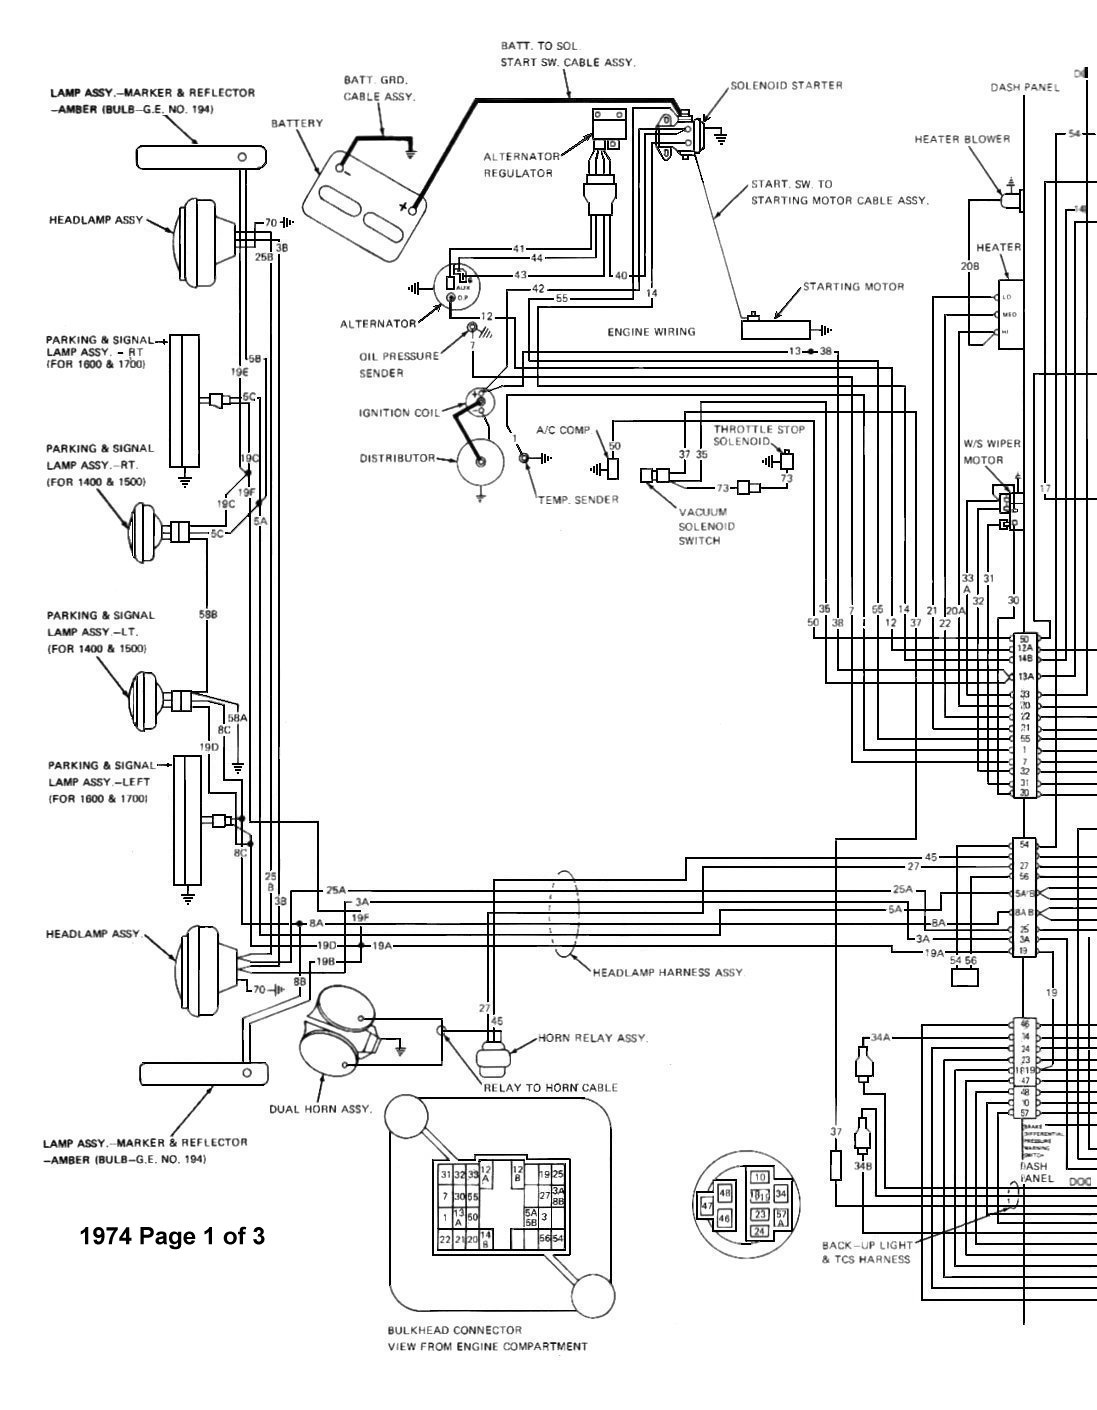 1989 Jeep Grand Wagoneer Wiring Diagram